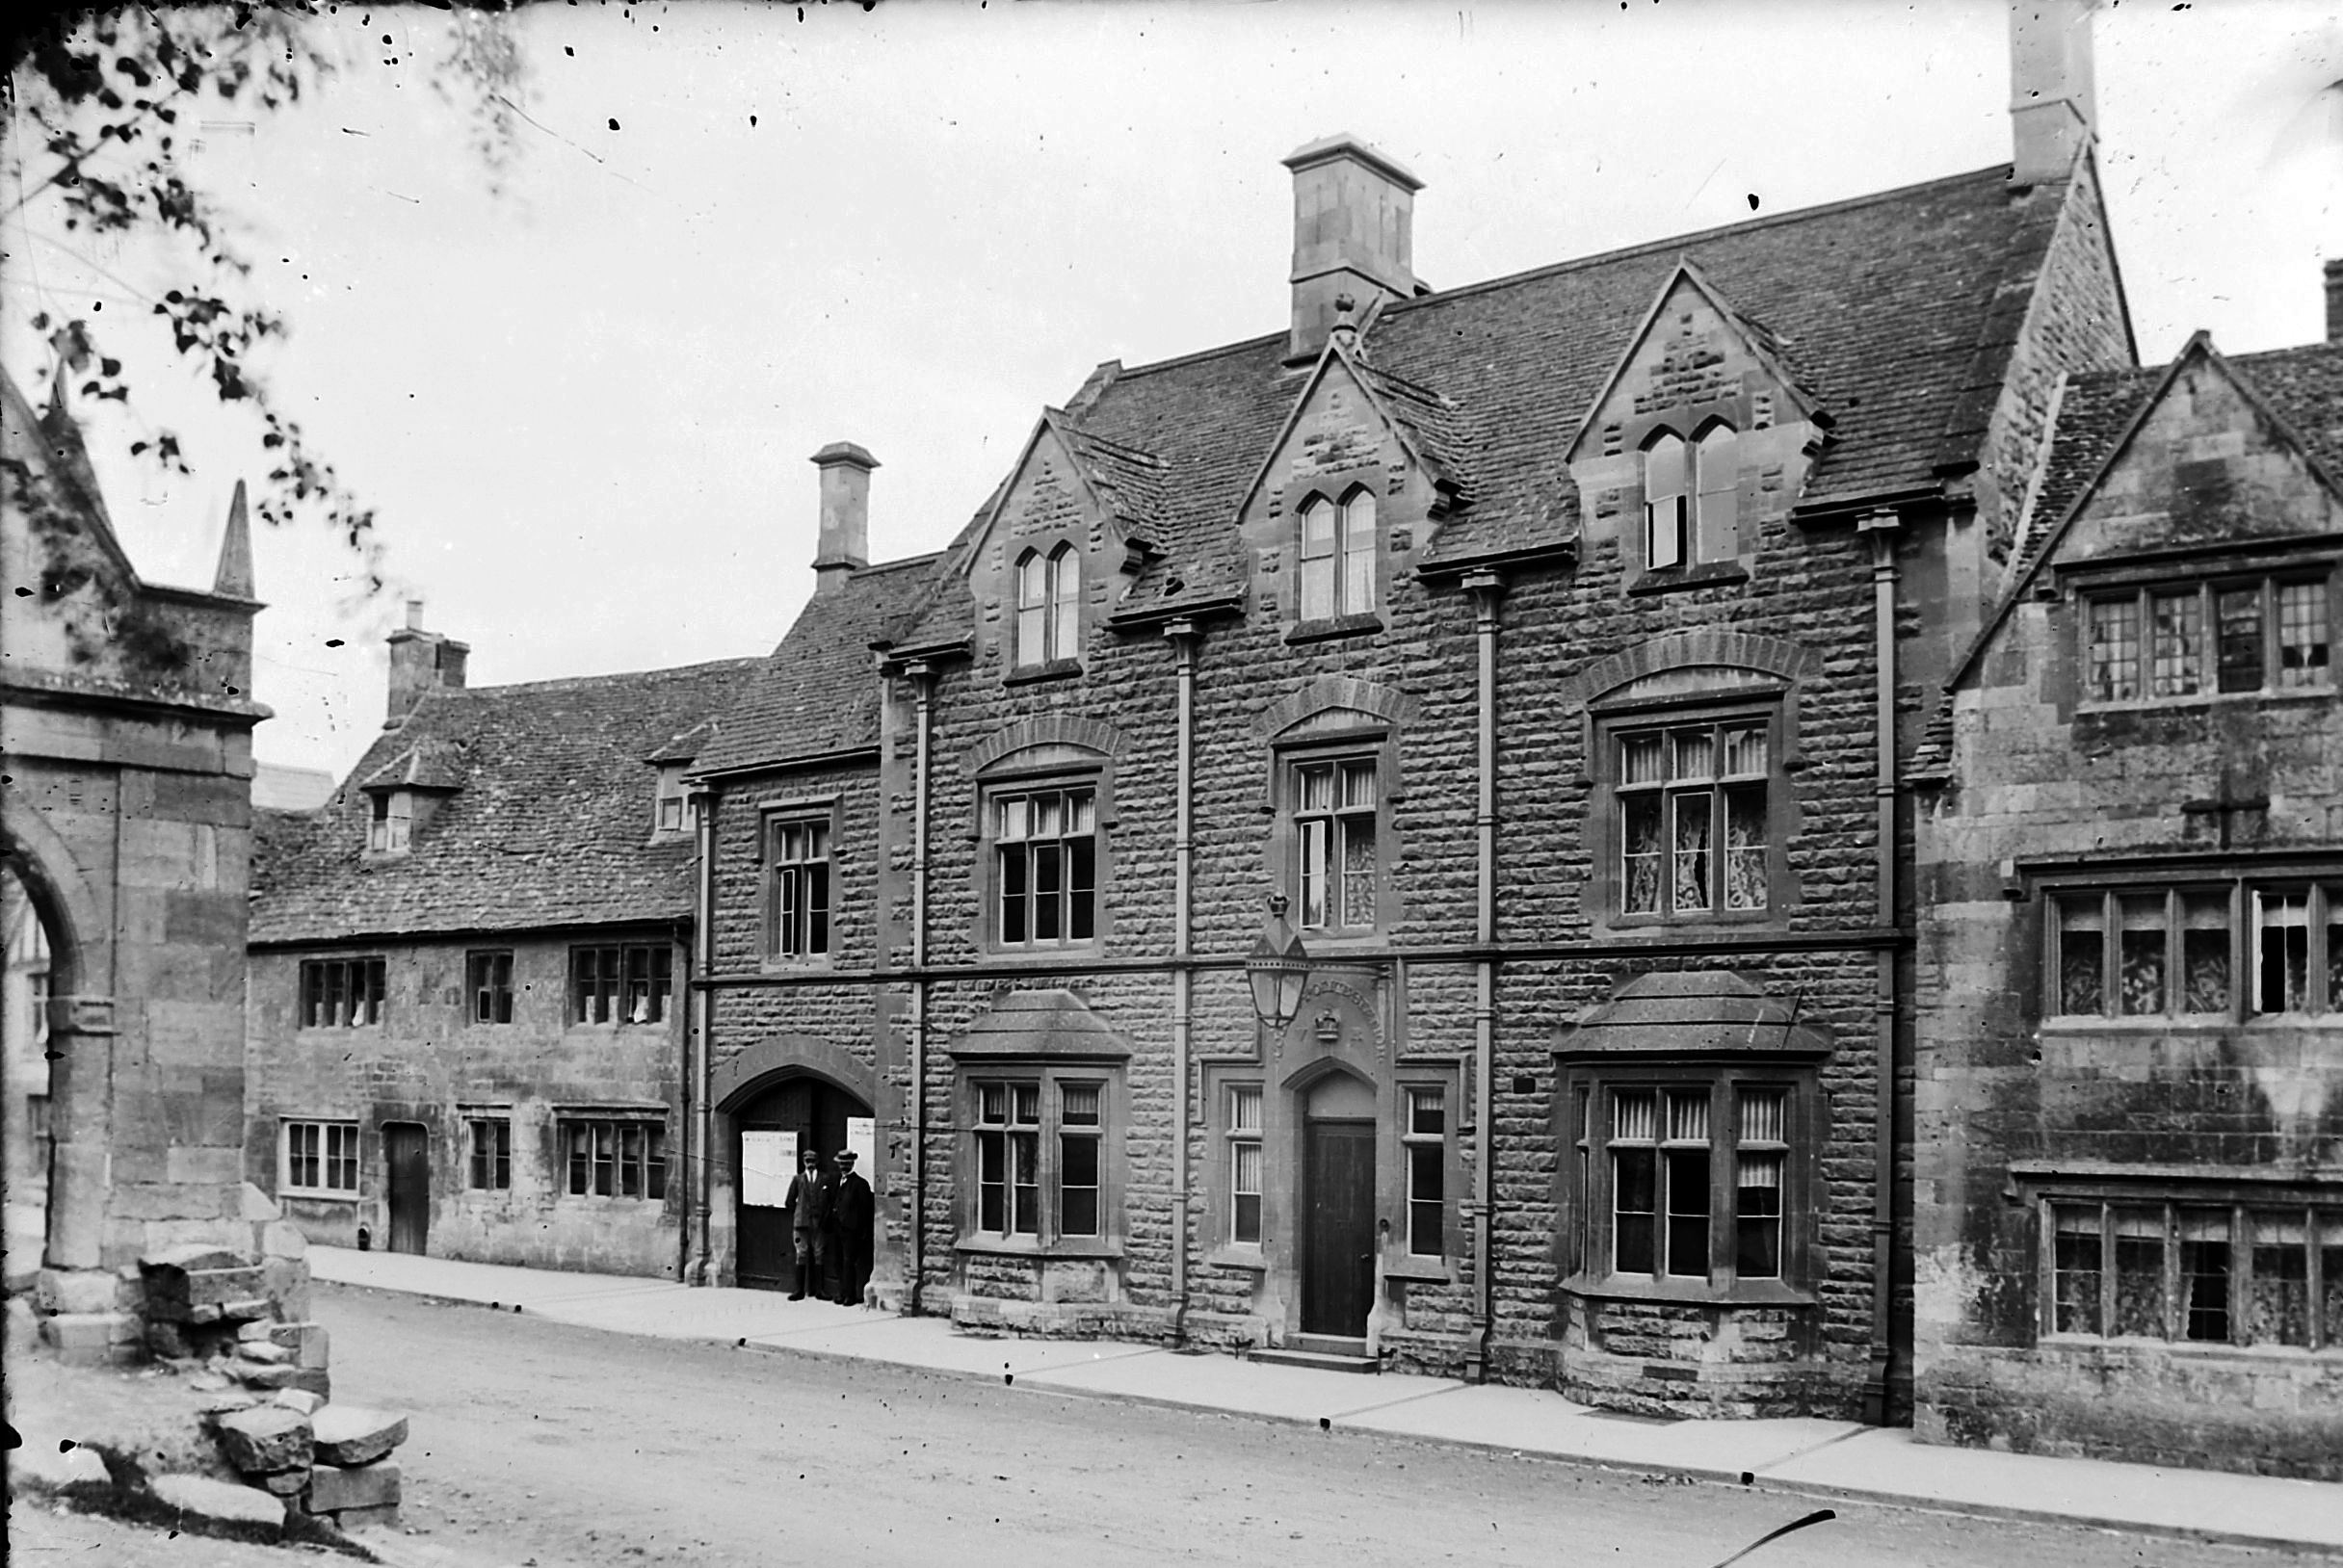 Exterior, c.1900. Dated inscription - 'VR County Police Station 1871' - can be seen above the door, behind the lamp.